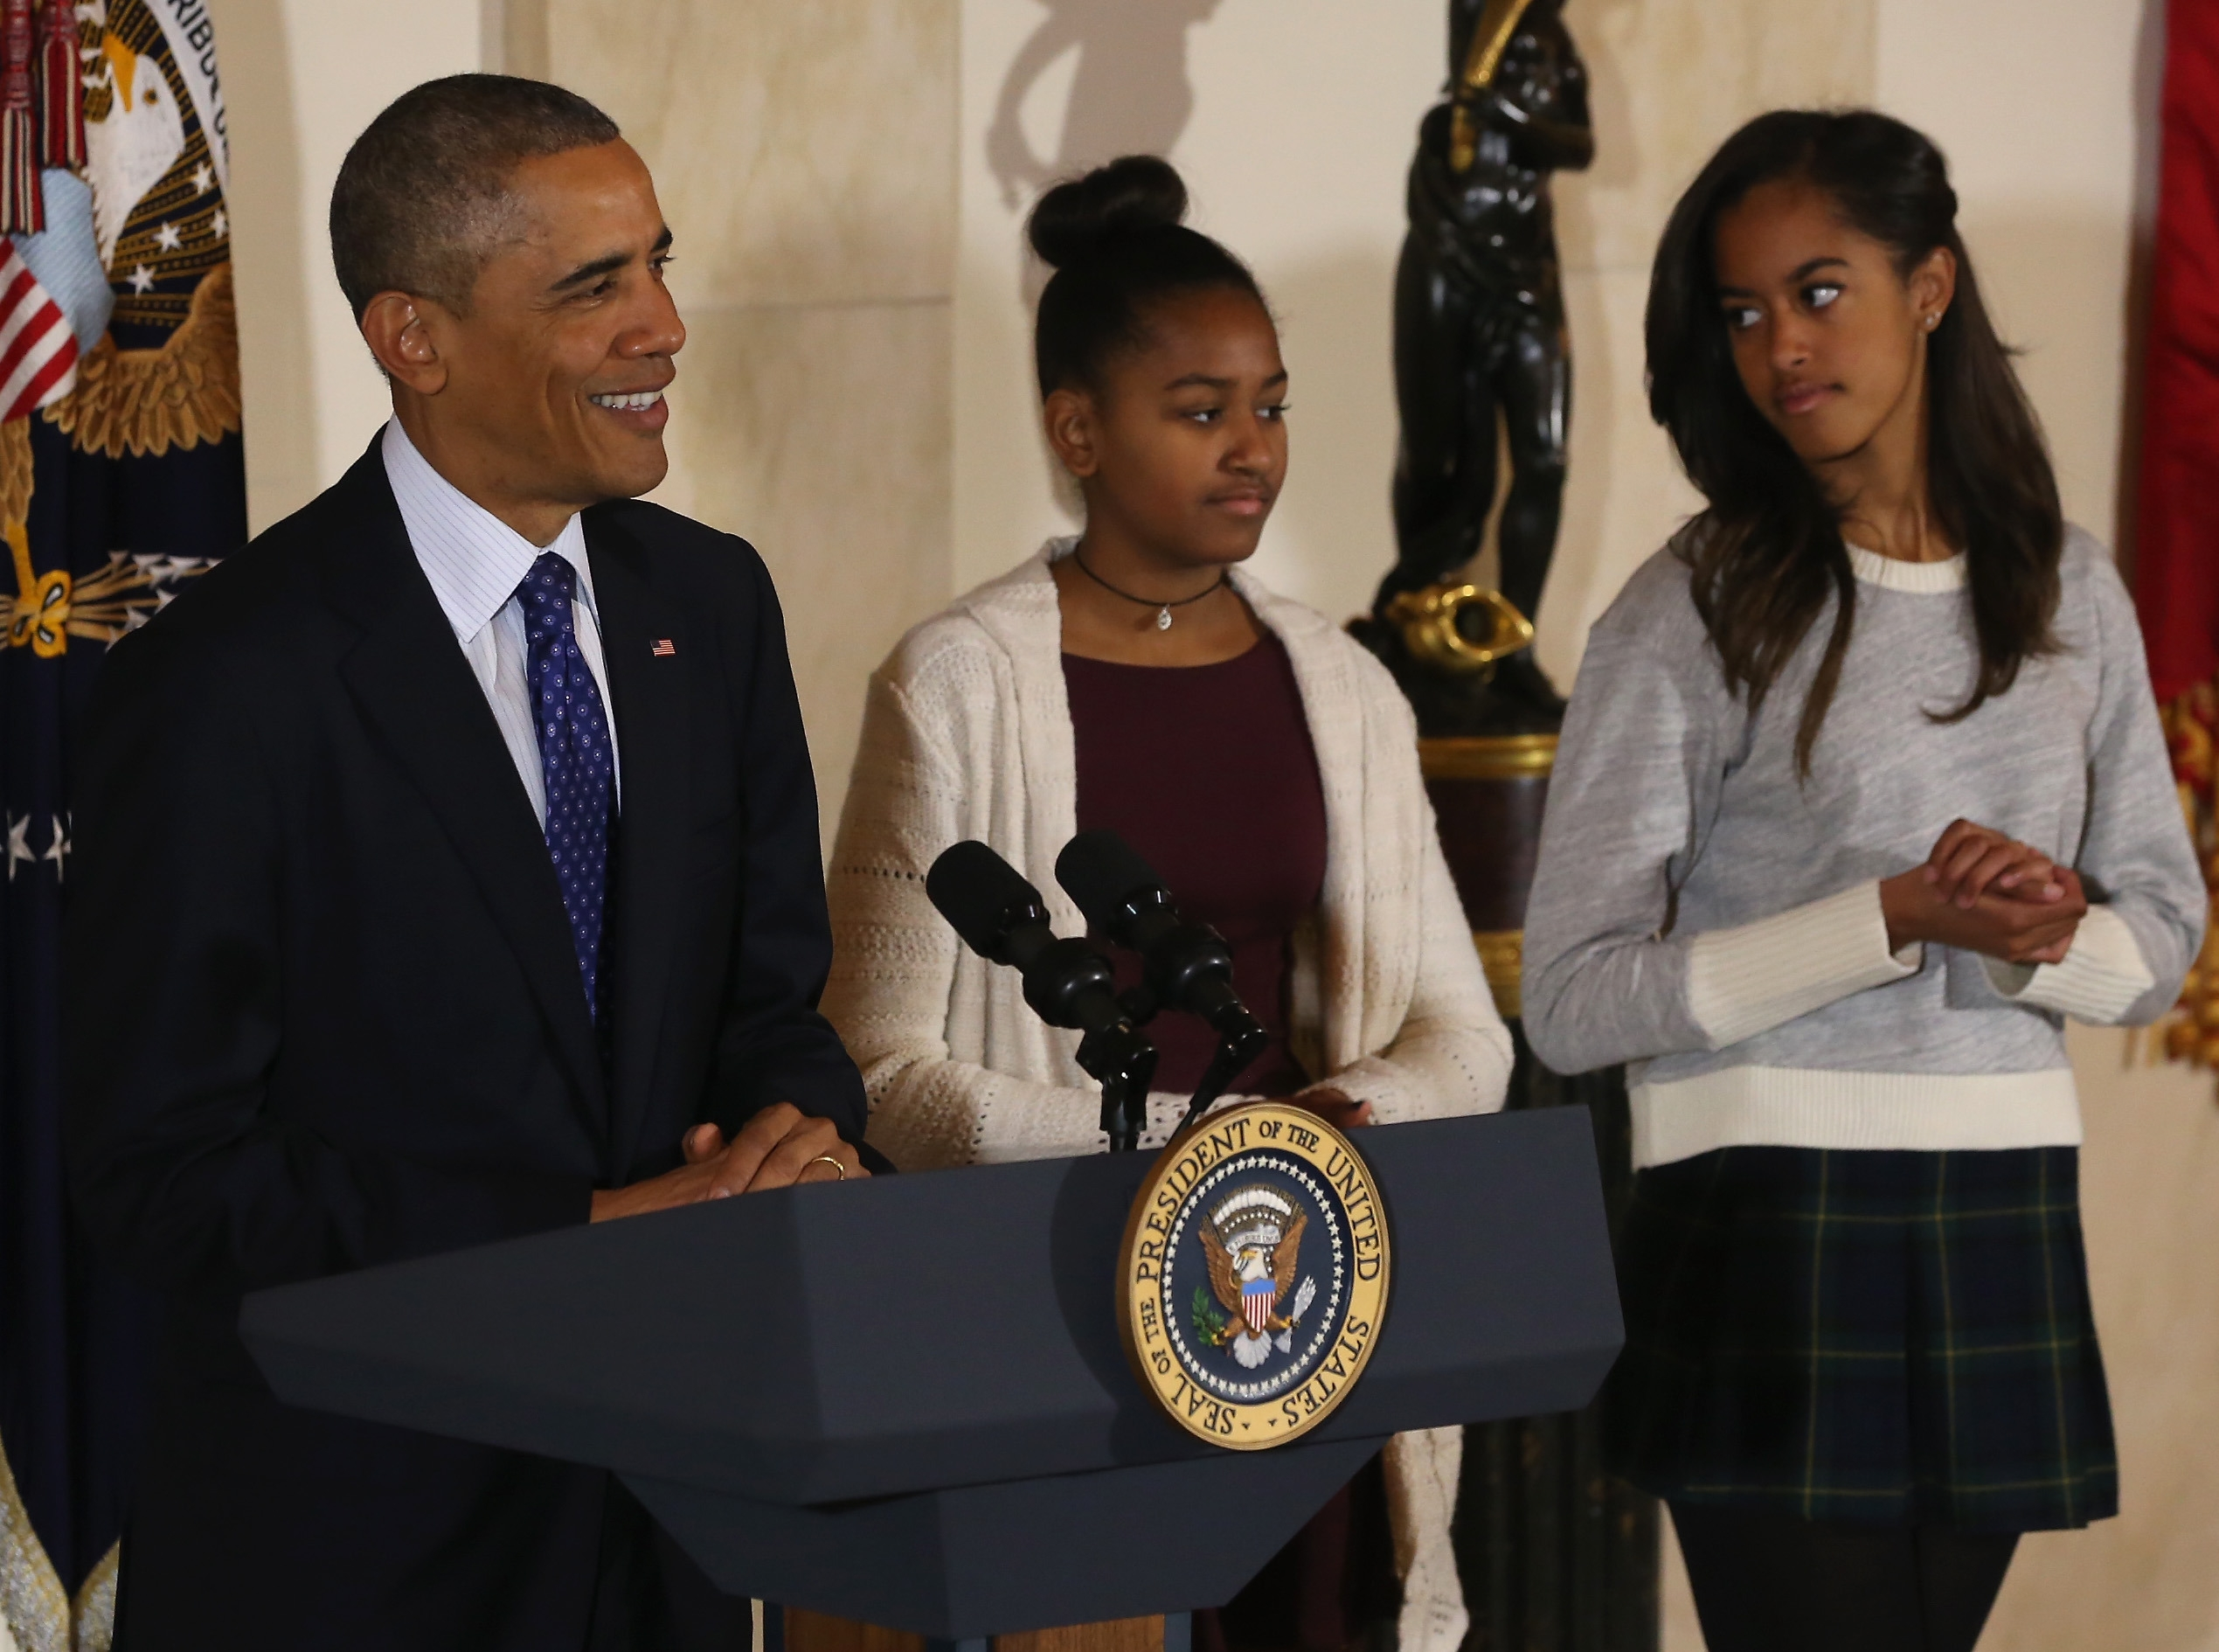 The Presidential pardon of a turkey has been a long time Thanksgiving tradition that dates back to the Harry Truman administration. Some facial reactions made by President Obama's daughters, Sasha and Malia, last week has caused some controversy.